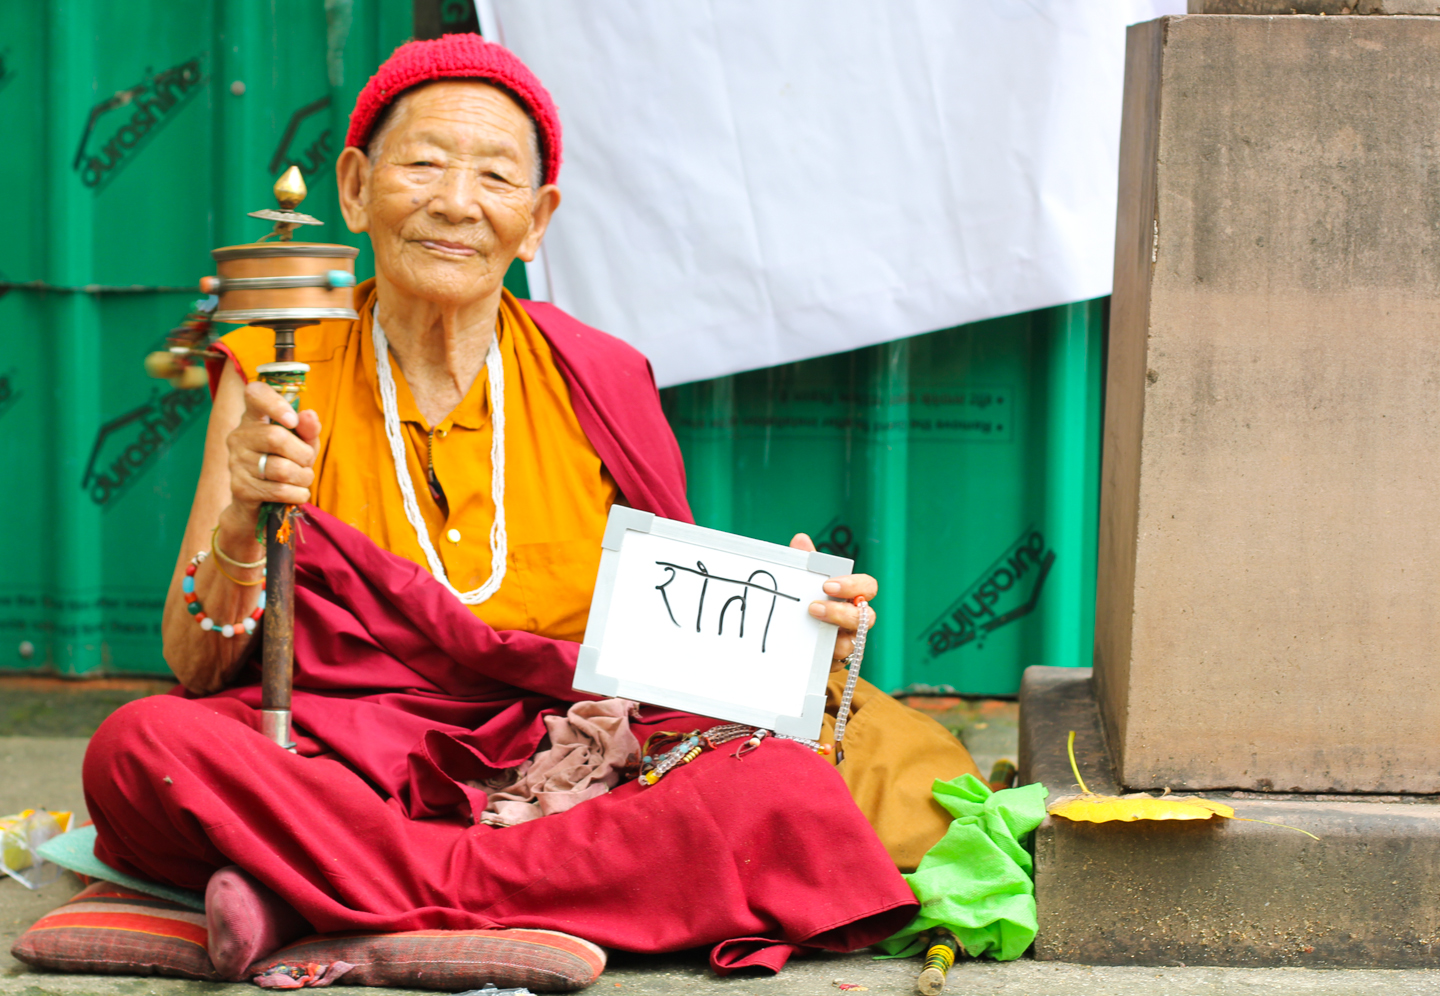 Ane says she is more than 100 years old. She moved to Bodh Gaya from a village near Kolkata many years ago, and now spends her days under a bell at the Mahabodhi Temple spinning her prayer wheel. When we asked her what chai made her think of, she brought out a half-eaten roti, which she was saving for her afternoon cup.